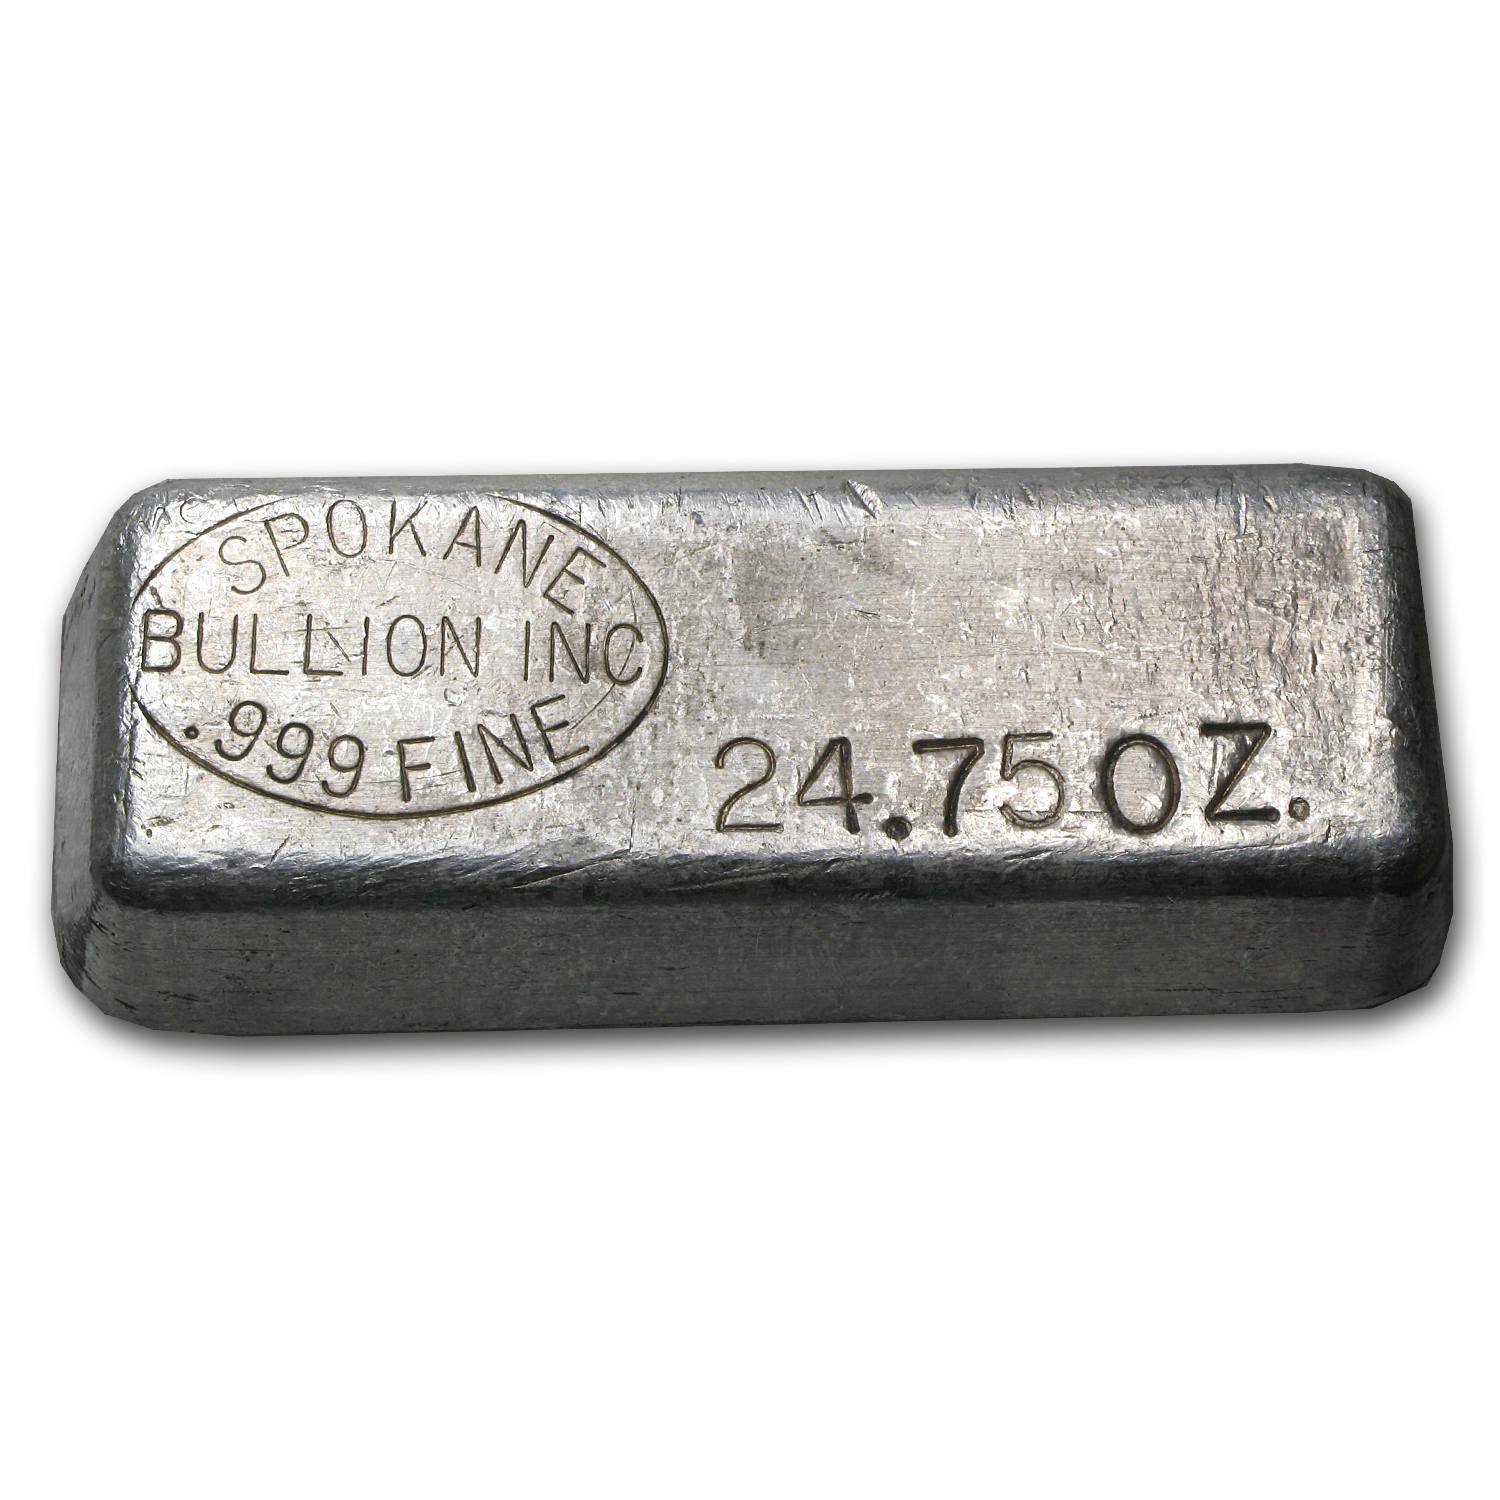 24.75 oz Silver Bar - Spokane Bullion Inc